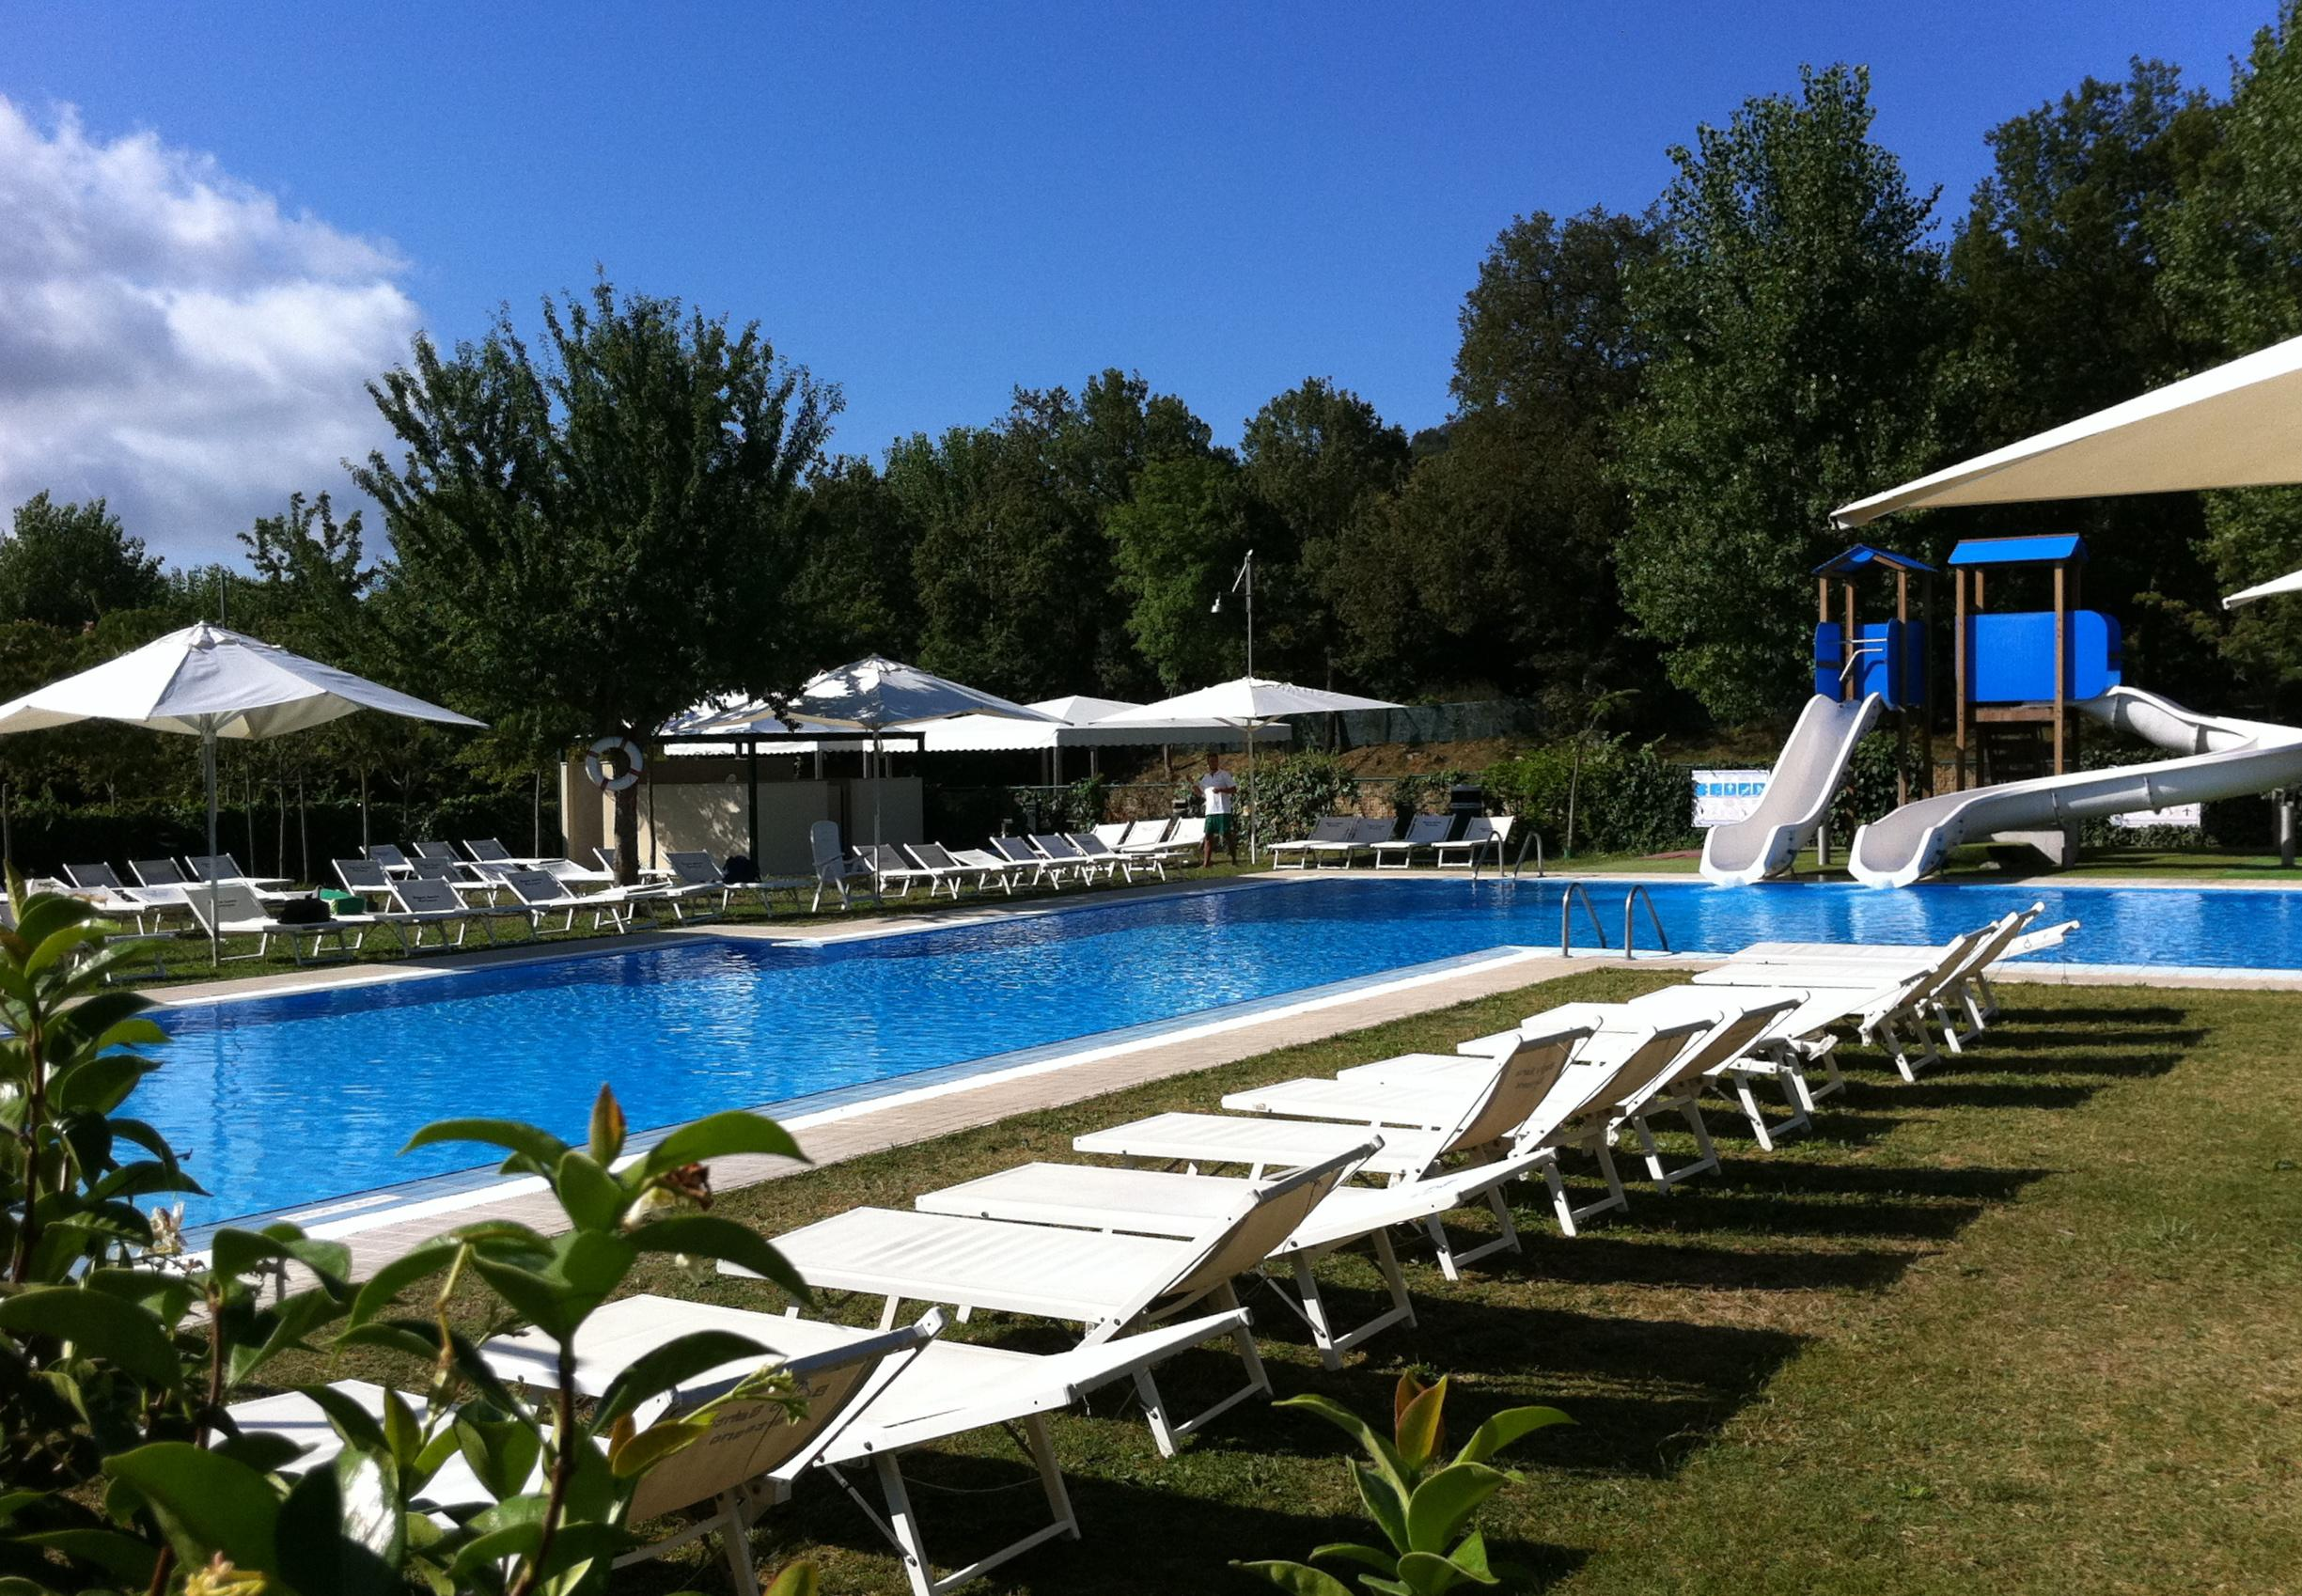 Kampeerplaats parco delle piscine toscana italien for Camping parco delle piscine zoover